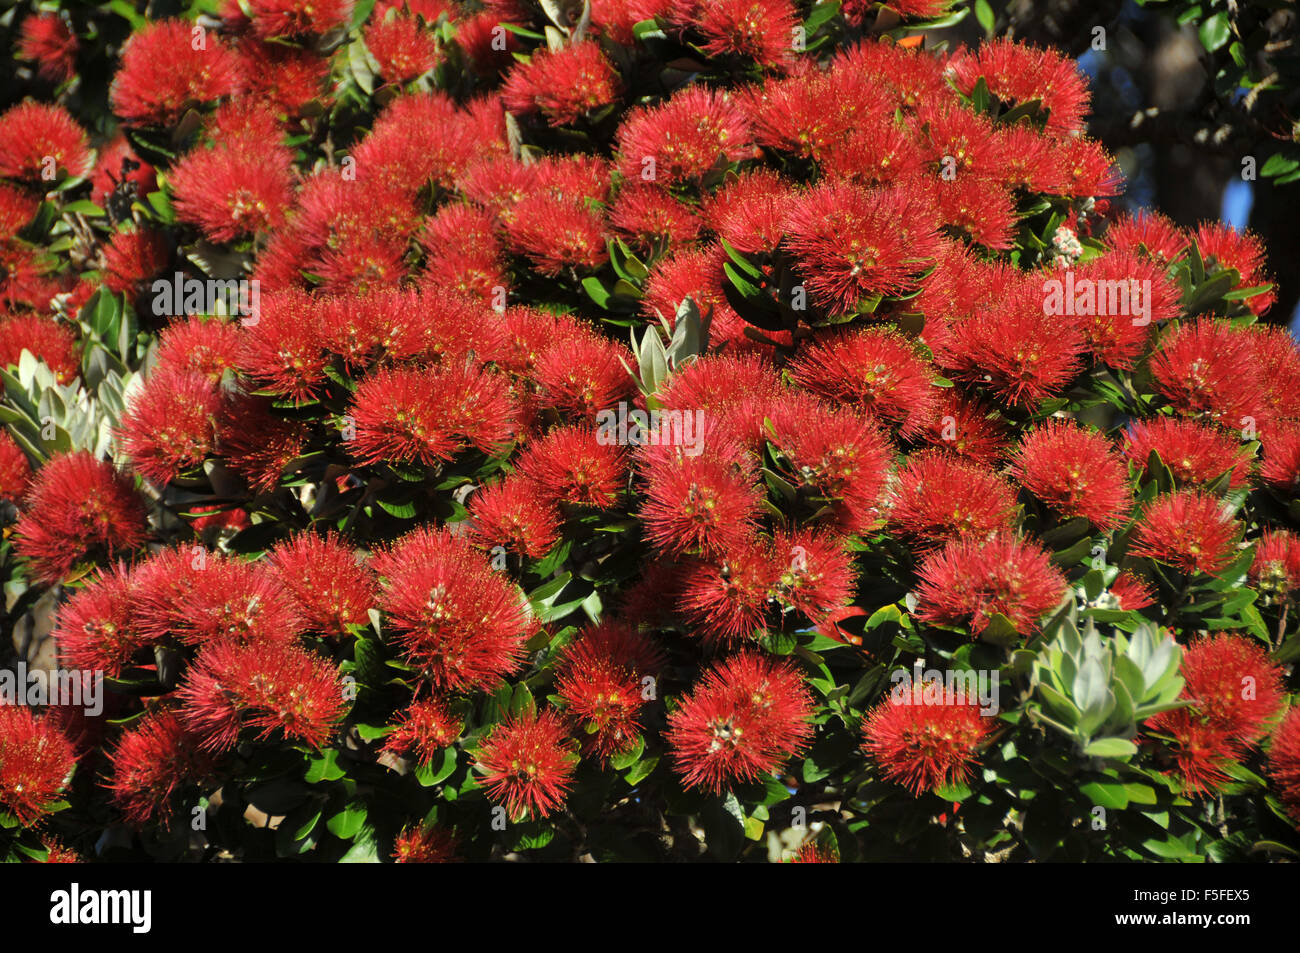 Pohutukawa Tree Flower Or New Zealand Christmas Tree Metrosideros